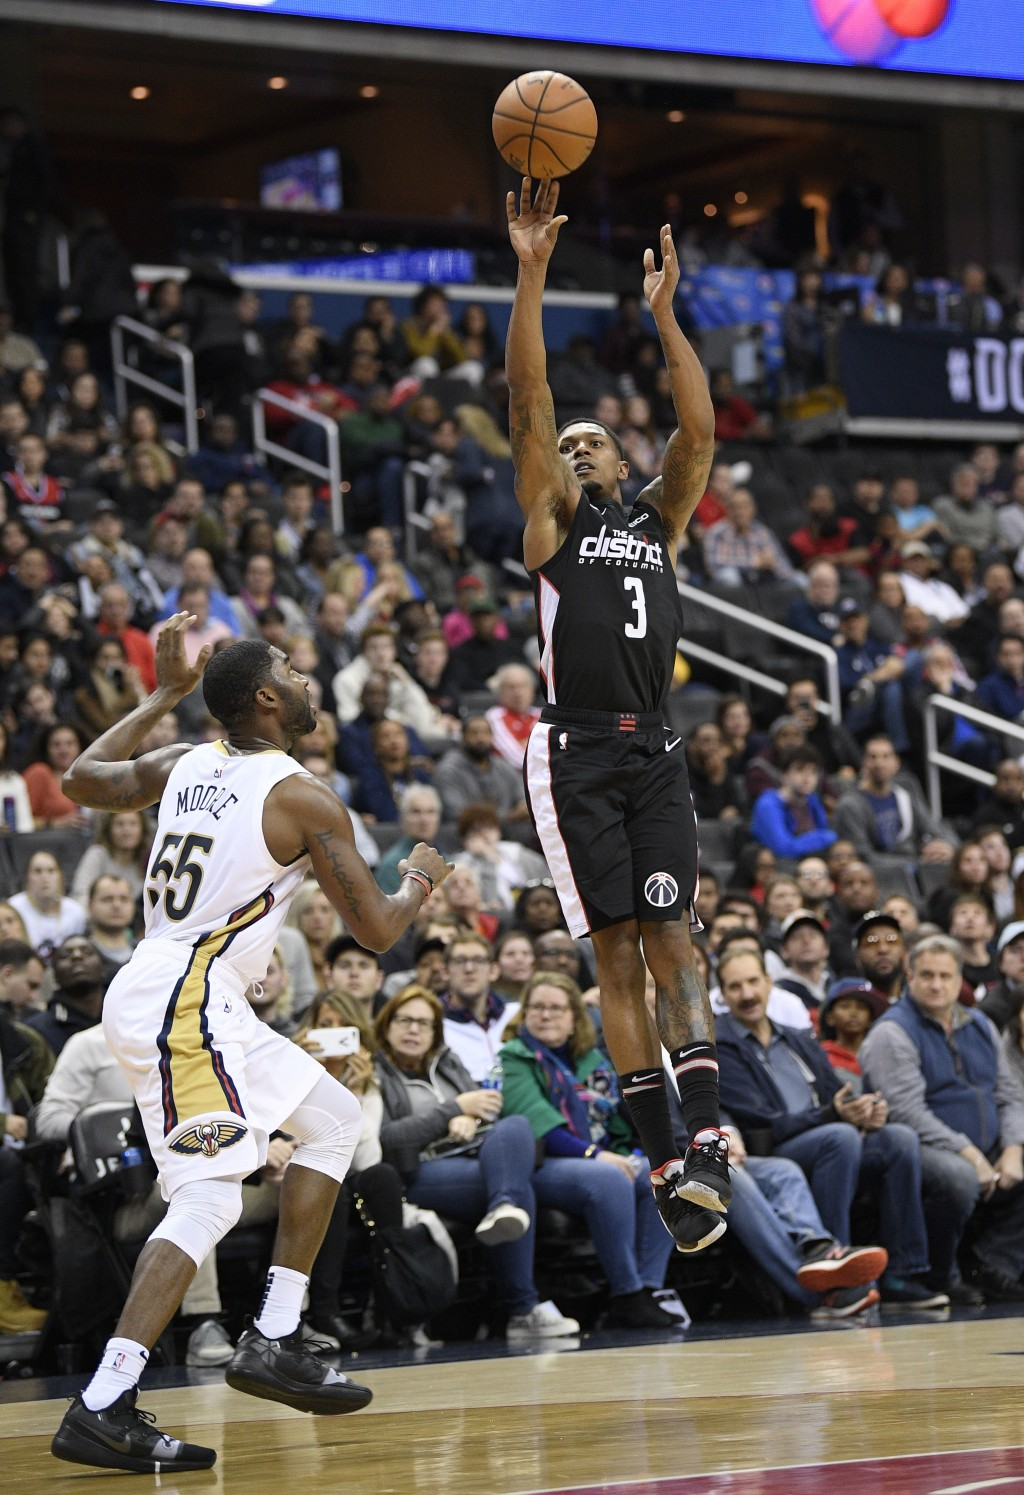 Washington Wizards guard Bradley Beal (3) shoots over New Orleans Pelicans guard E'Twaun Moore (55) during the second half of an NBA basketball game S...